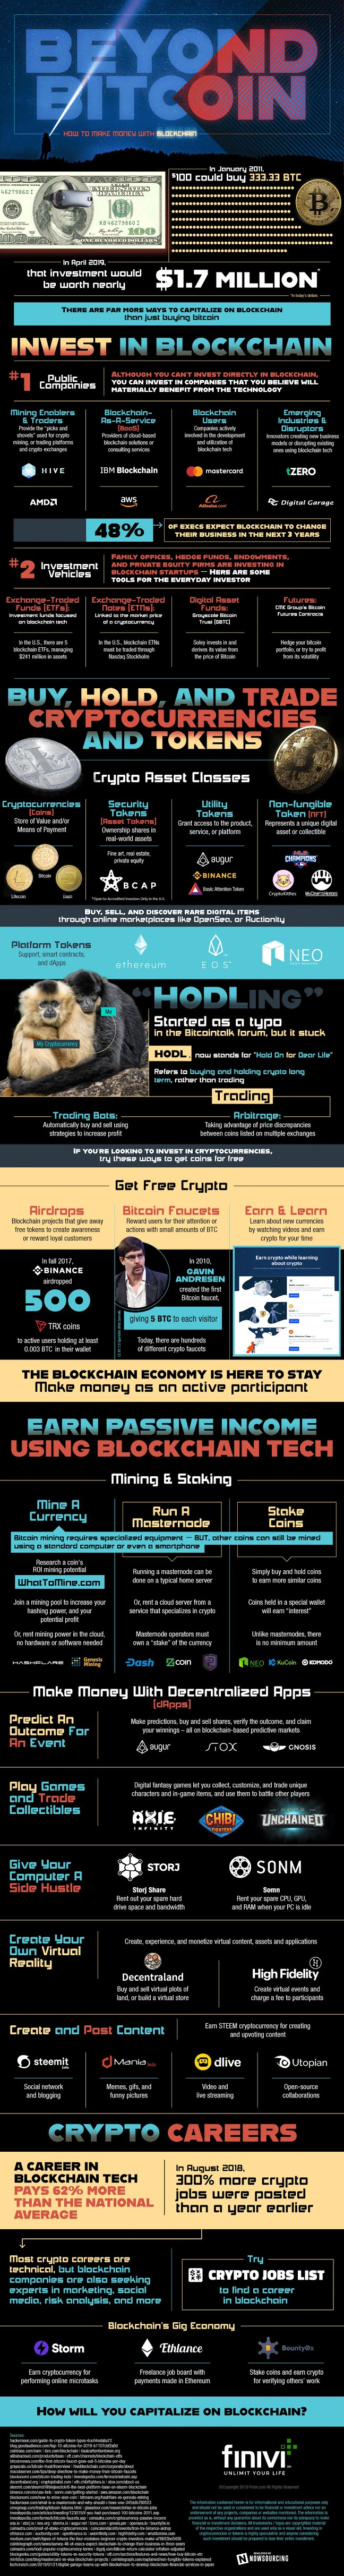 How To Make Money With Blockchain #infographic